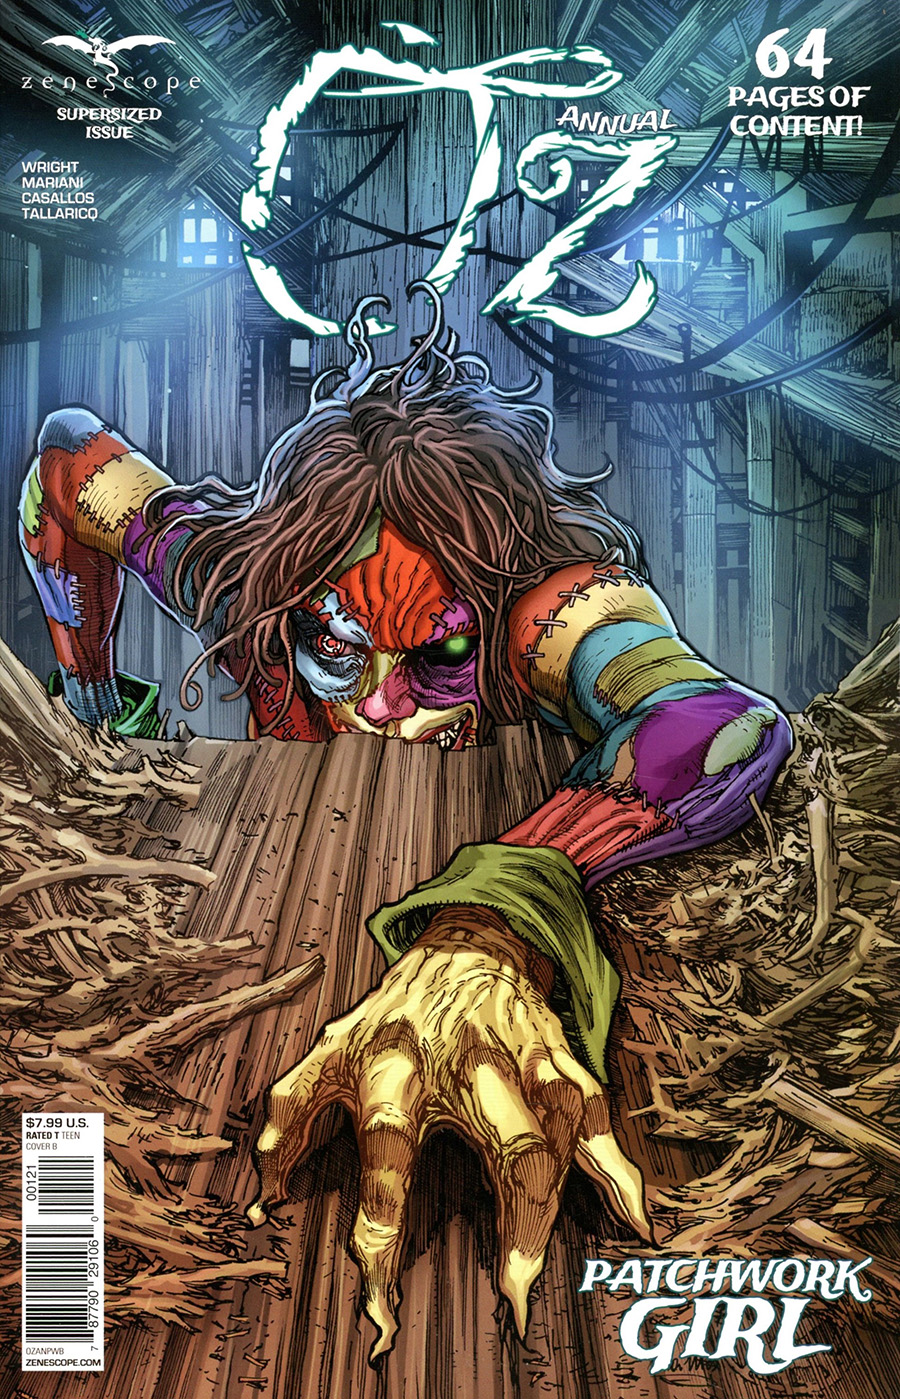 Grimm Fairy Tales Presents Oz Annual Patchwork Girl #1 (One Shot) Cover B Harvey Tolibao